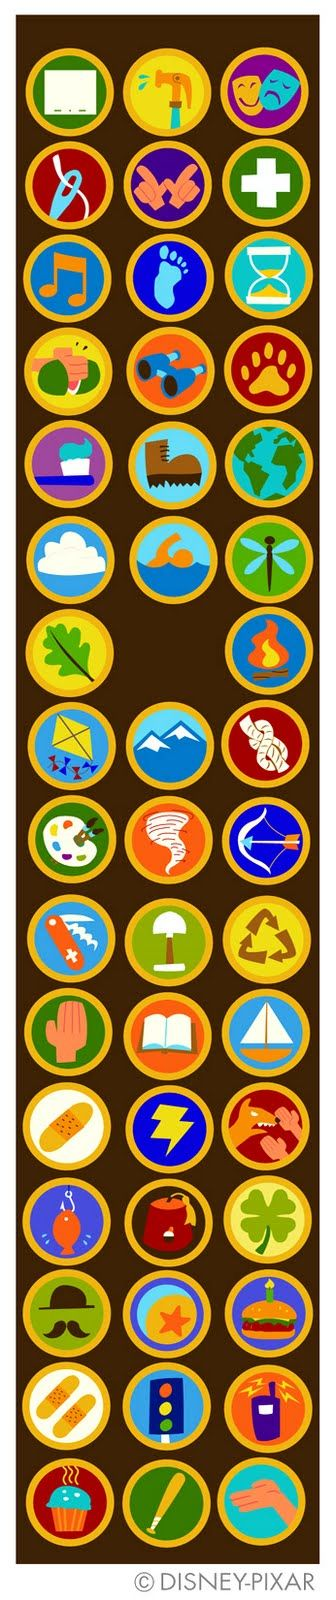 "Russell's merit badges from the Pixar movie ""Up"", adapted for Disney Wilderness Explorers badging system, via Mozilla Open Badges."